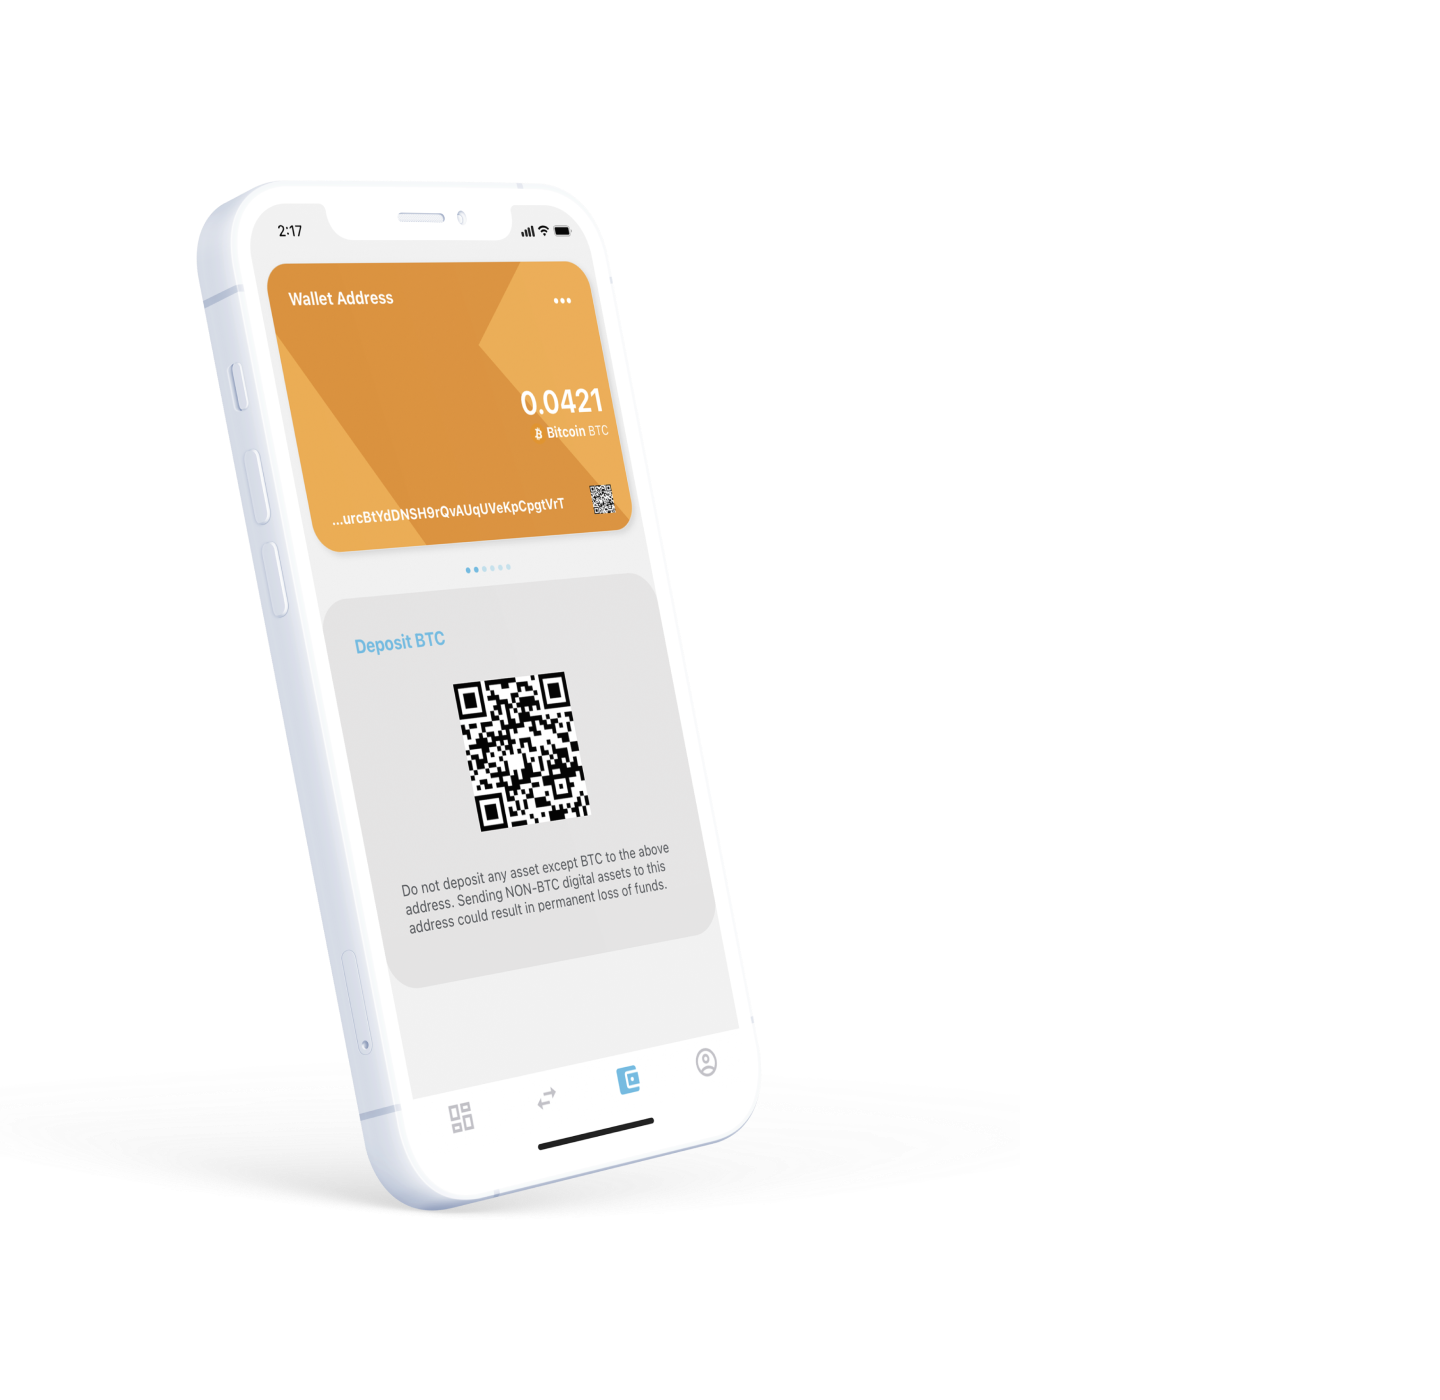 coinpass mobile free deposits